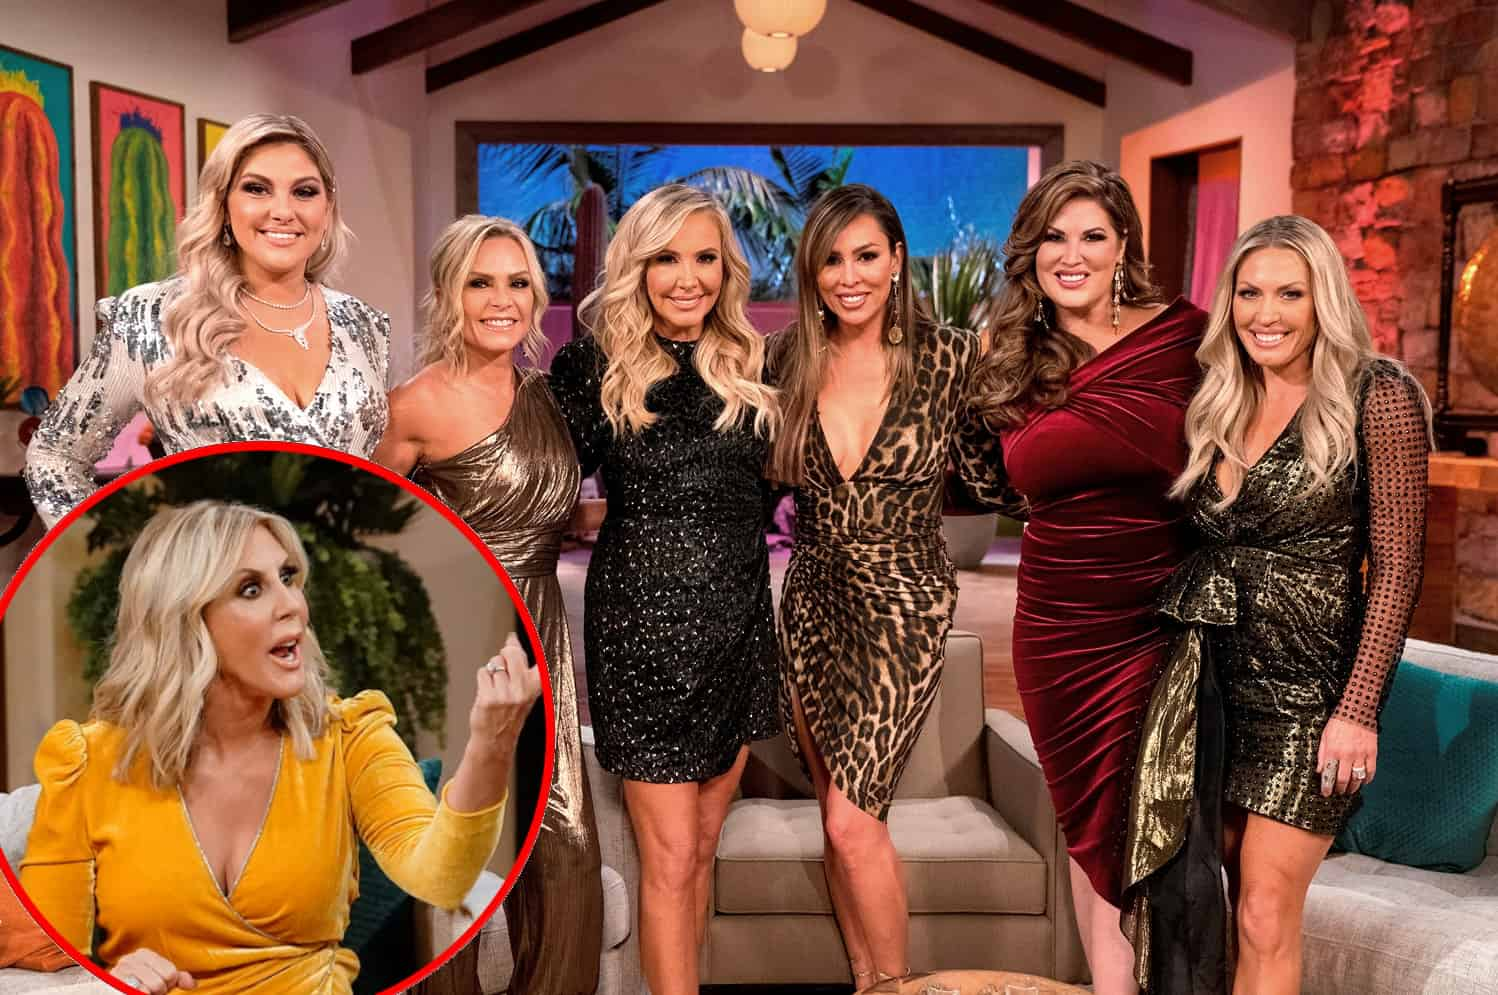 VIDEO: Watch the RHOC Reunion Trailer! Emily Mentions Divorce and Vicki Suffers an Epic Meltdown, Plus Kelly Battles With Tamra and Shannon